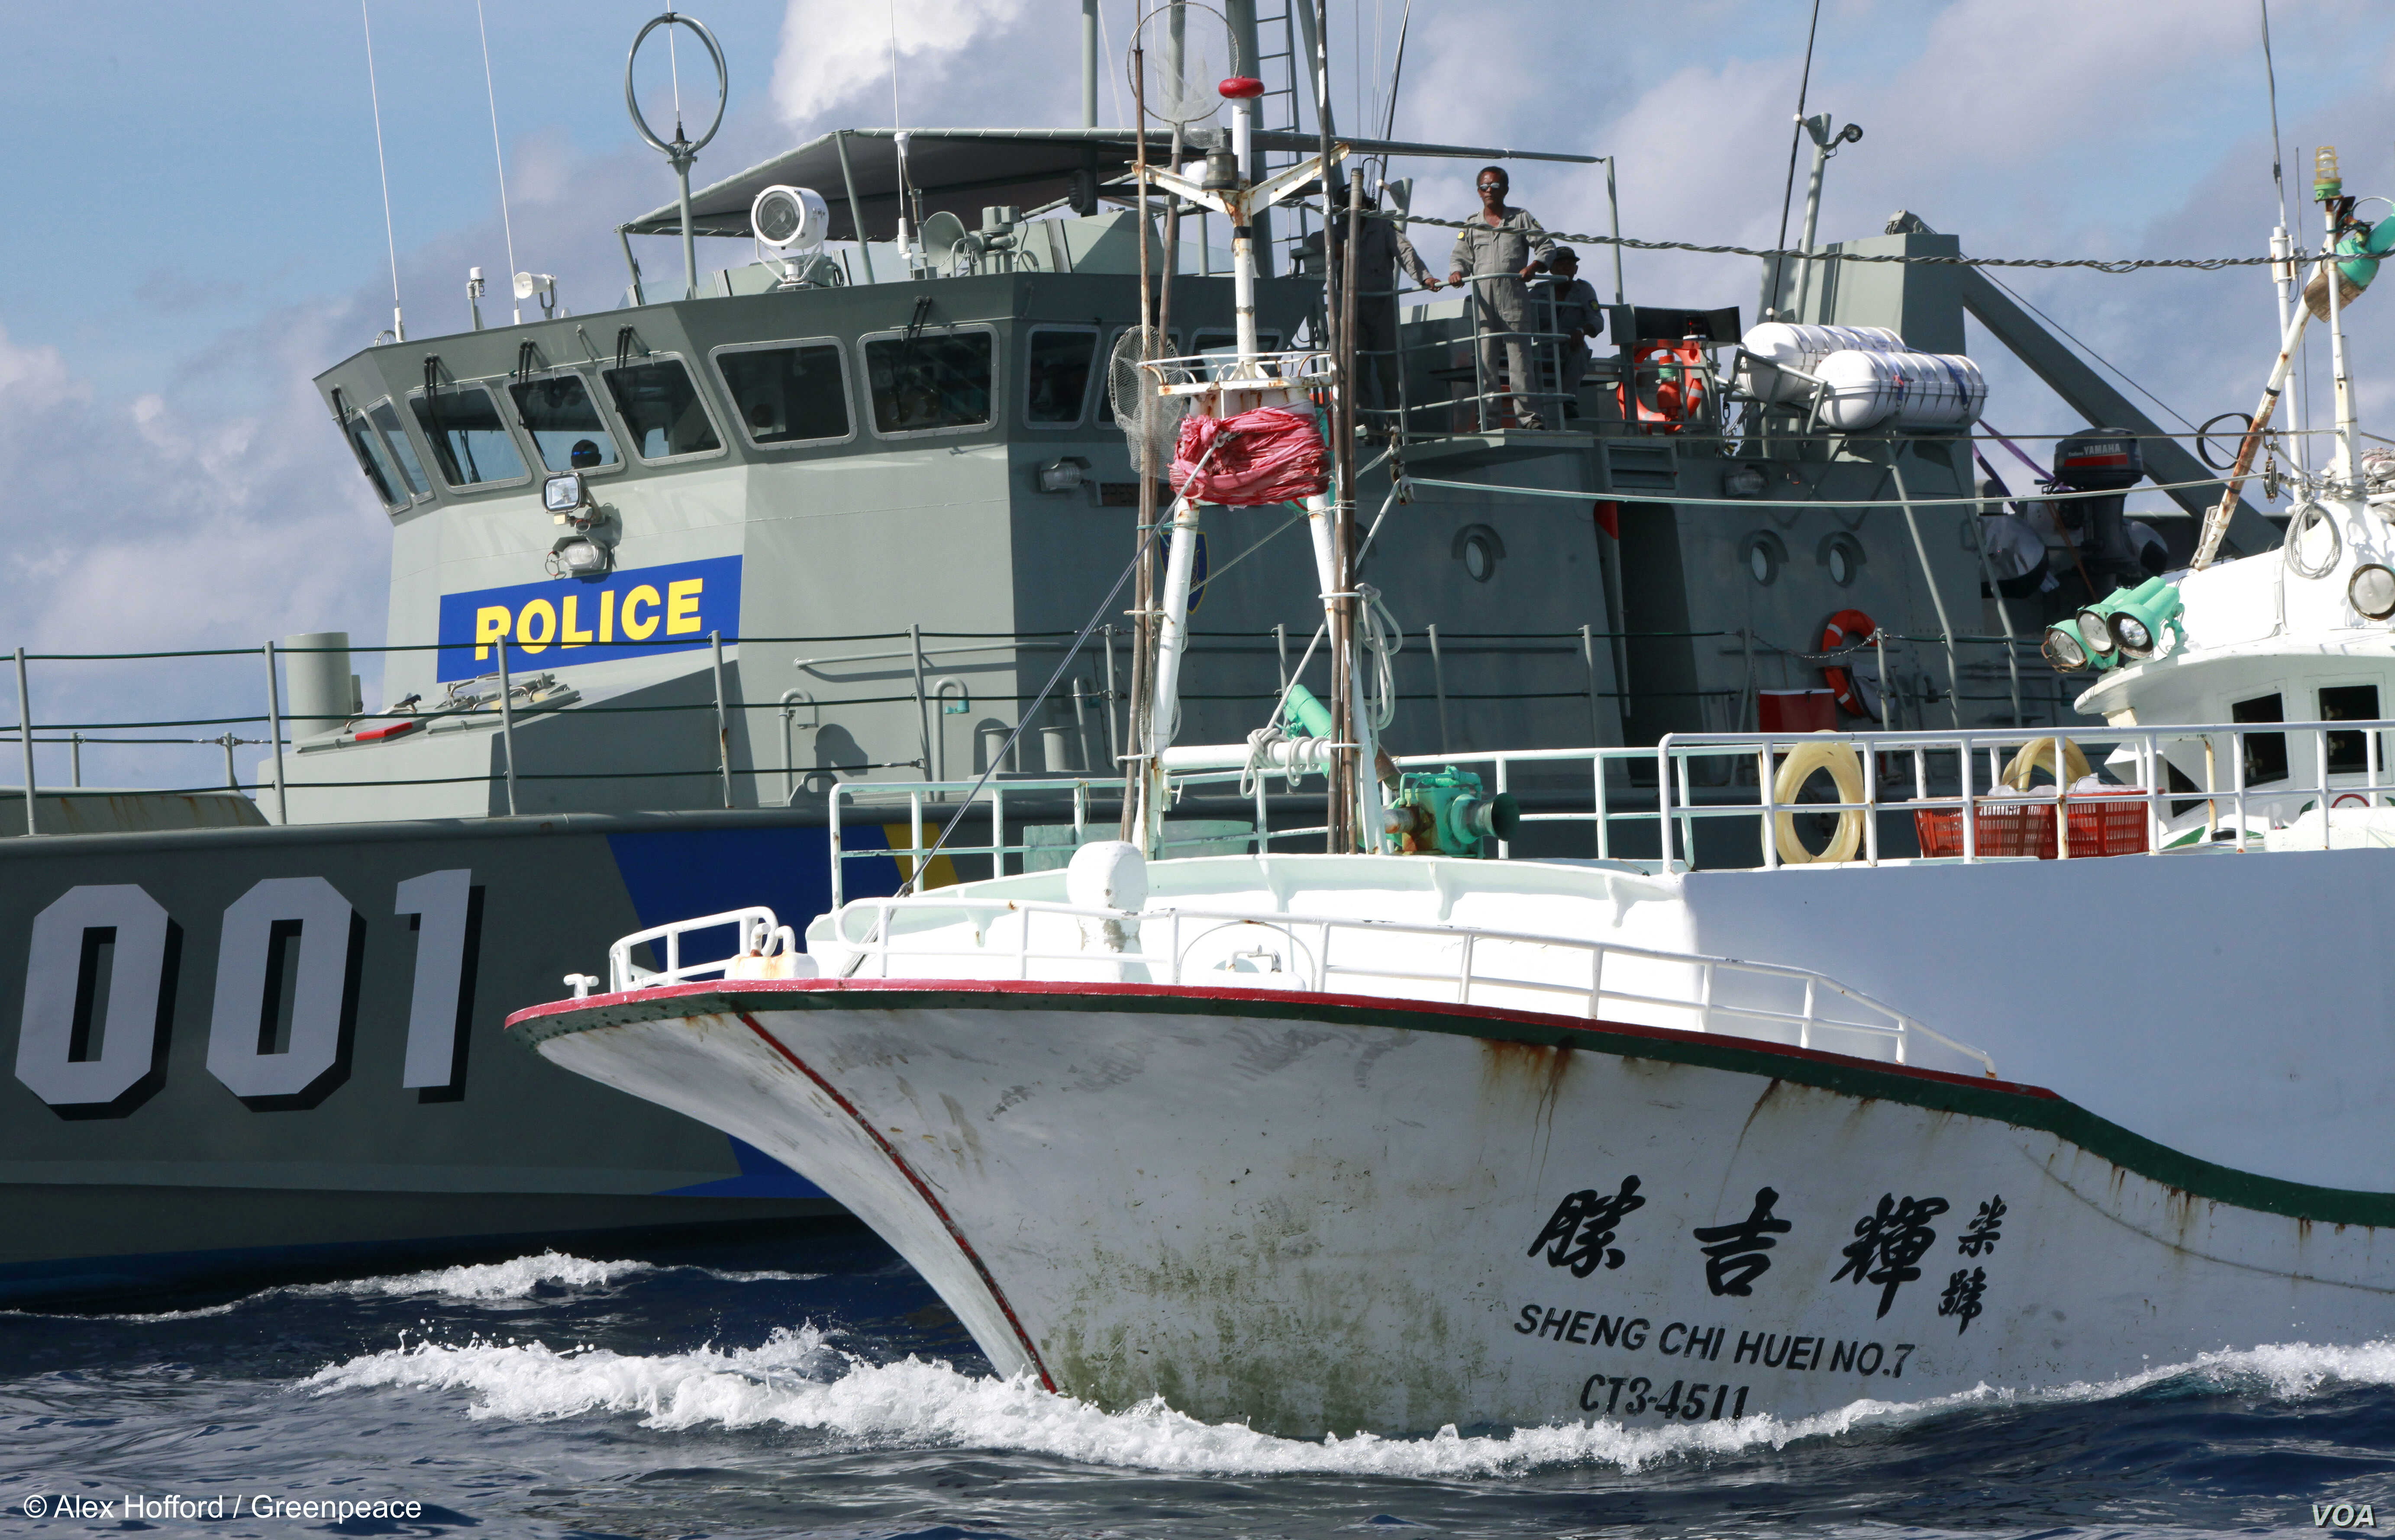 A Paluan law enforcement ship suspects a Taiwanese long line fishing vessel of illegal shark finning in Palau's Exclusive Economic Zone, in violation of Palau's law banning such fishing. (Alex Hofford/Greenpeace)